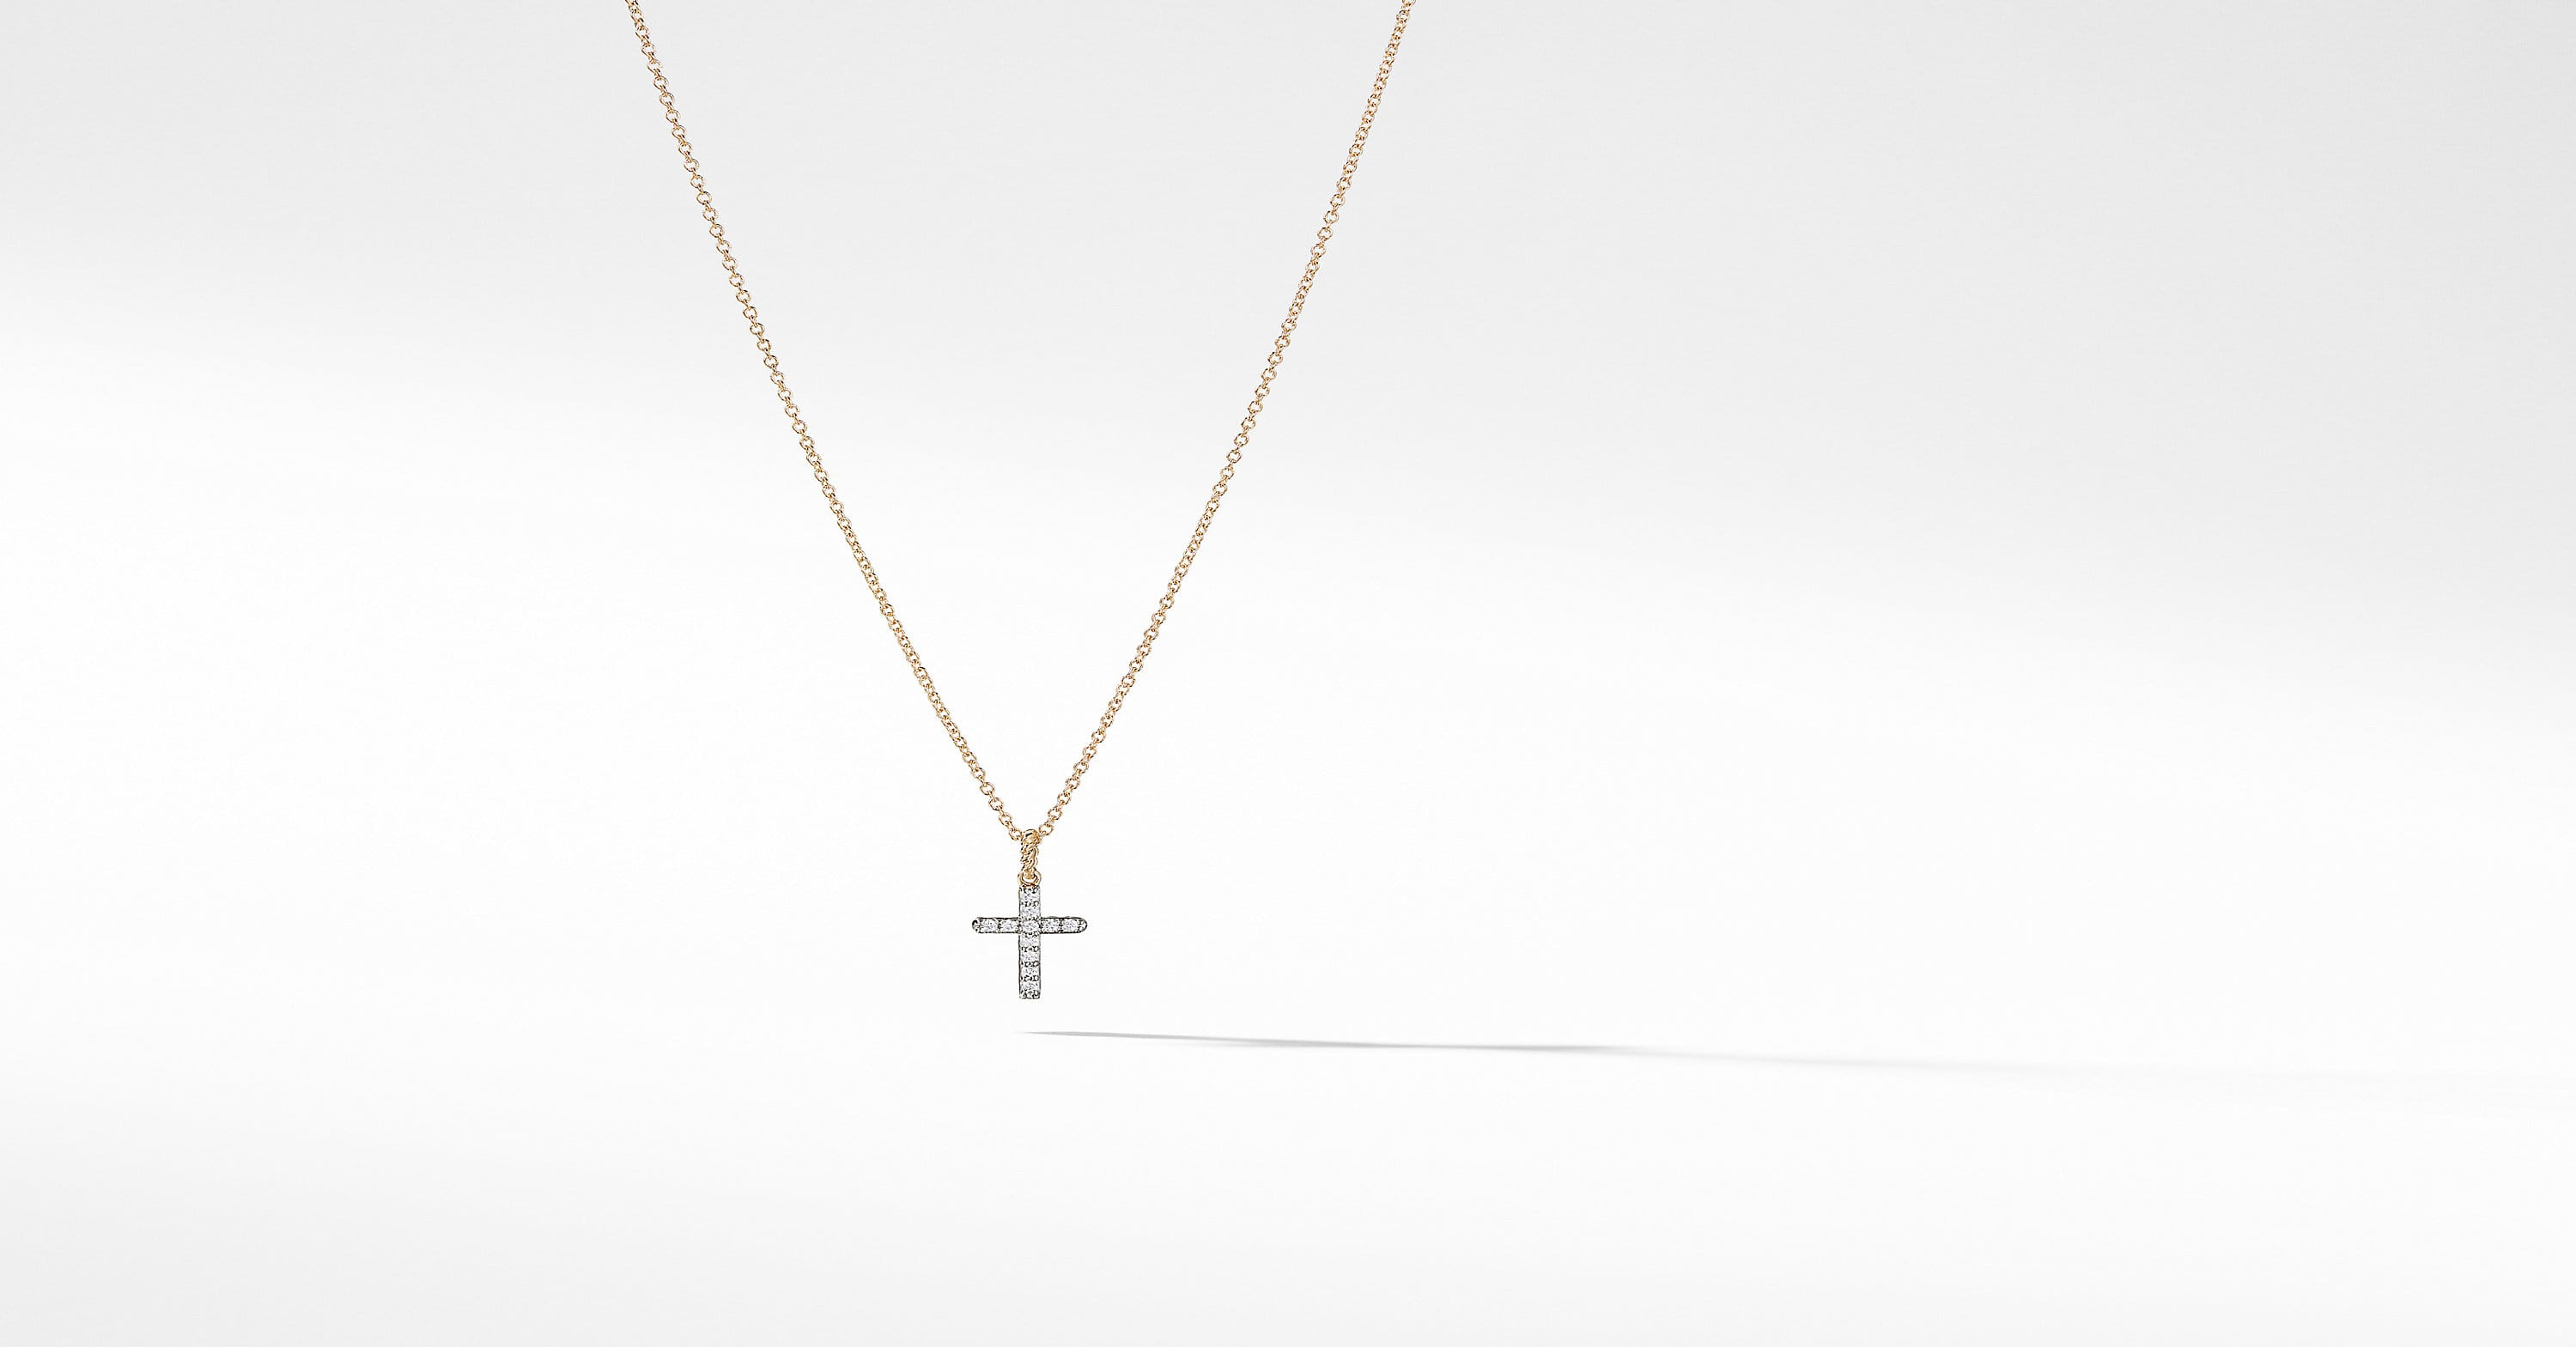 Cable Collectibles Cross Necklace with Diamonds in 18K Gold